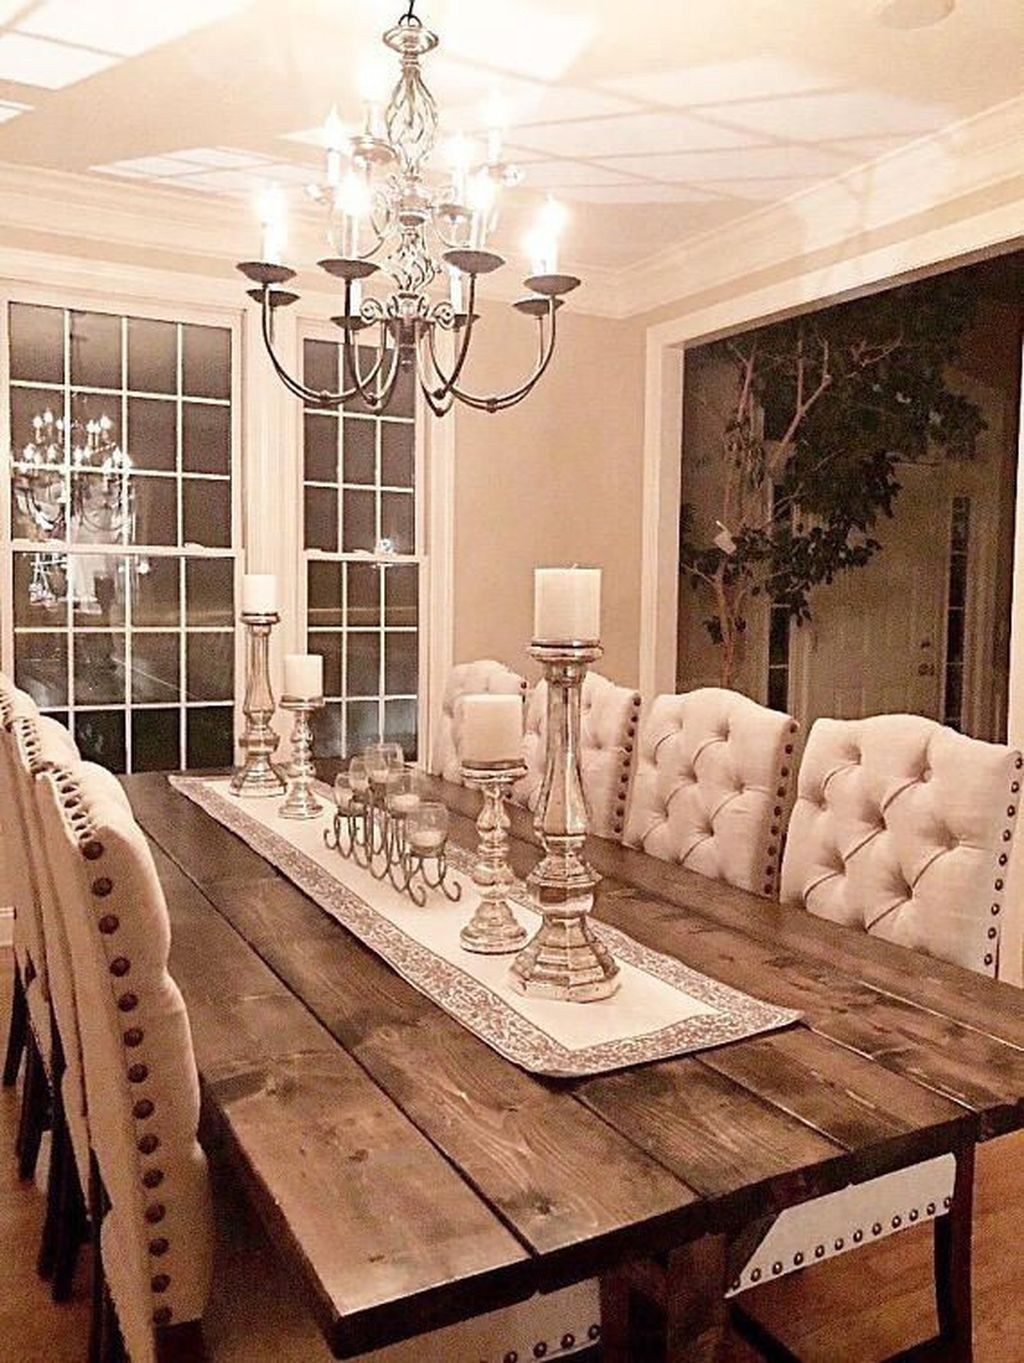 Rustic Dining Room Decorating Ideas.Rustic Farmhouse Living Room Decor Ideas 44 Rustichomedecor